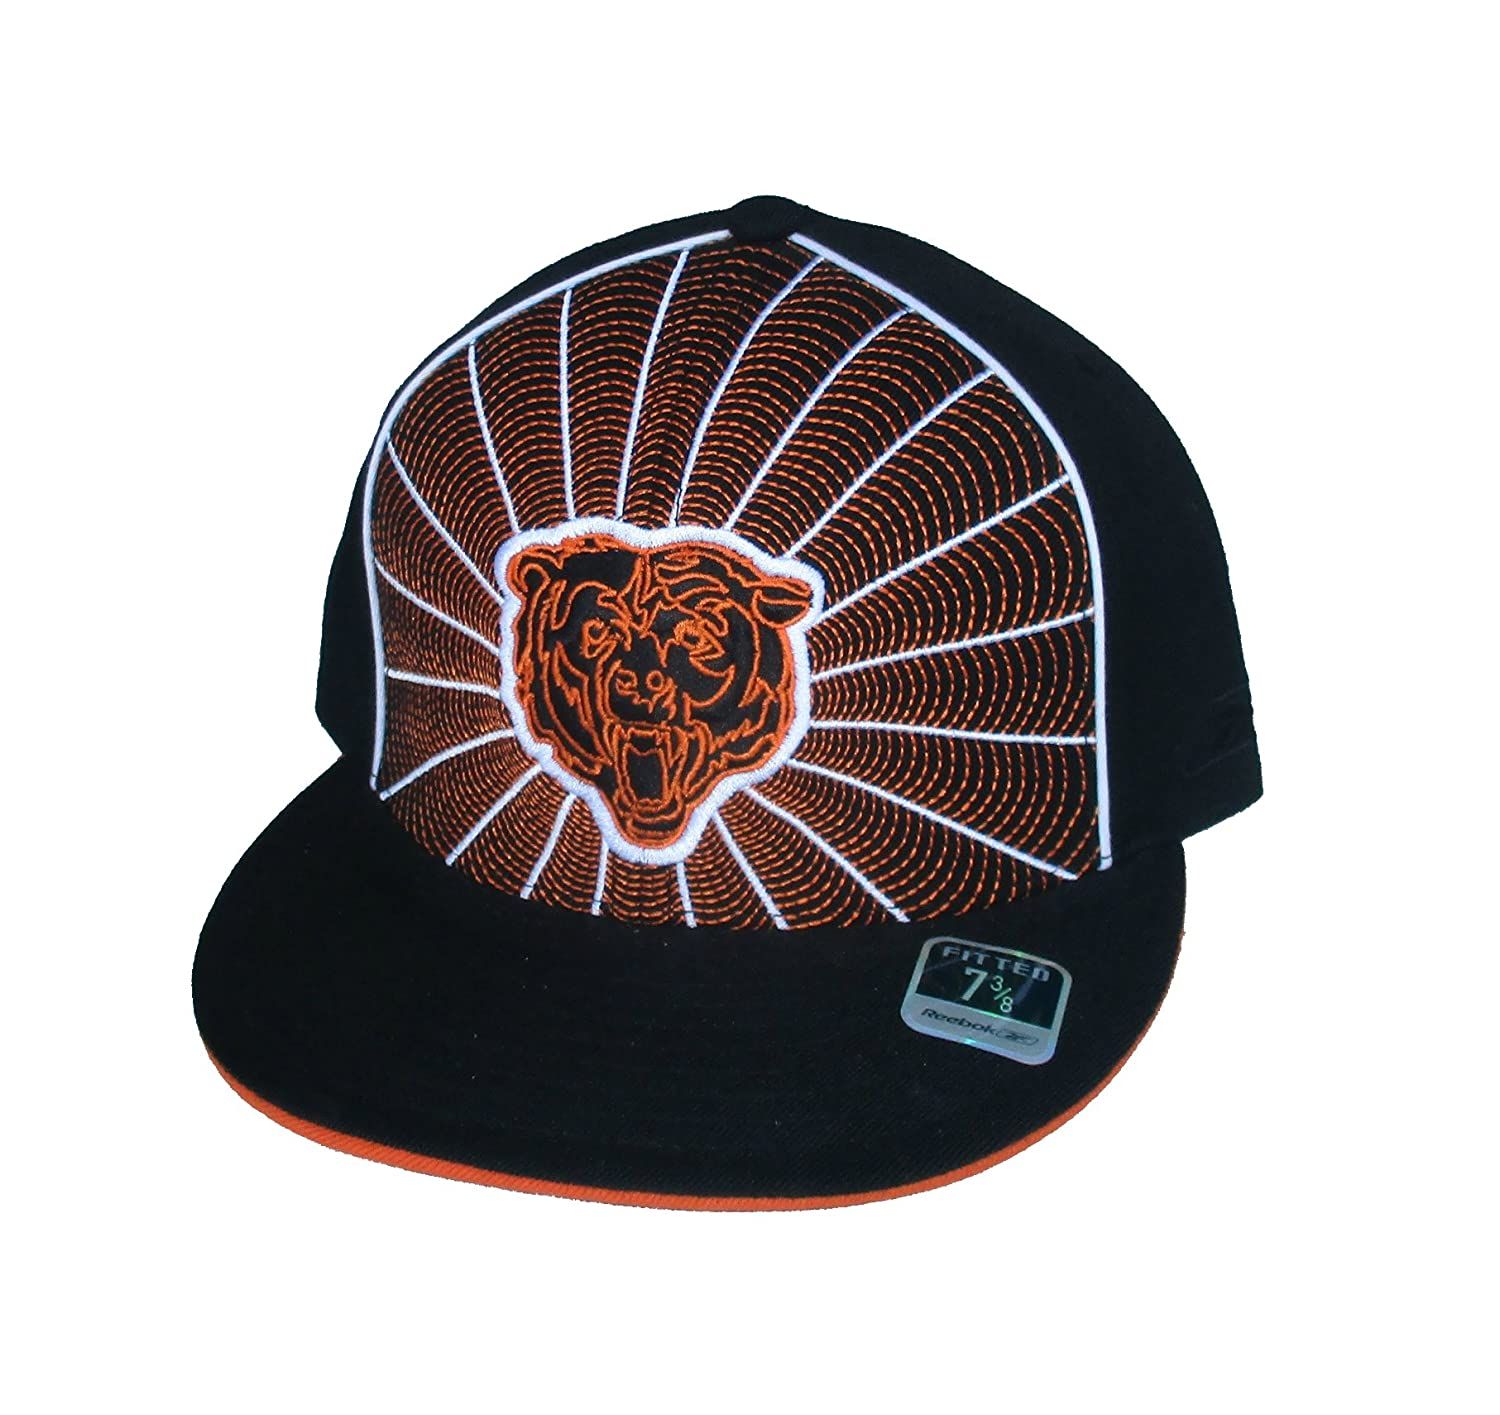 huge selection of 7e33a 9c5f0 Amazon.com   Chicago Bears Fitted Size 7 3 8 NFL Authentic Spiral Design  Bear Logo Hat Cap - Black   Orange   Sports   Outdoors